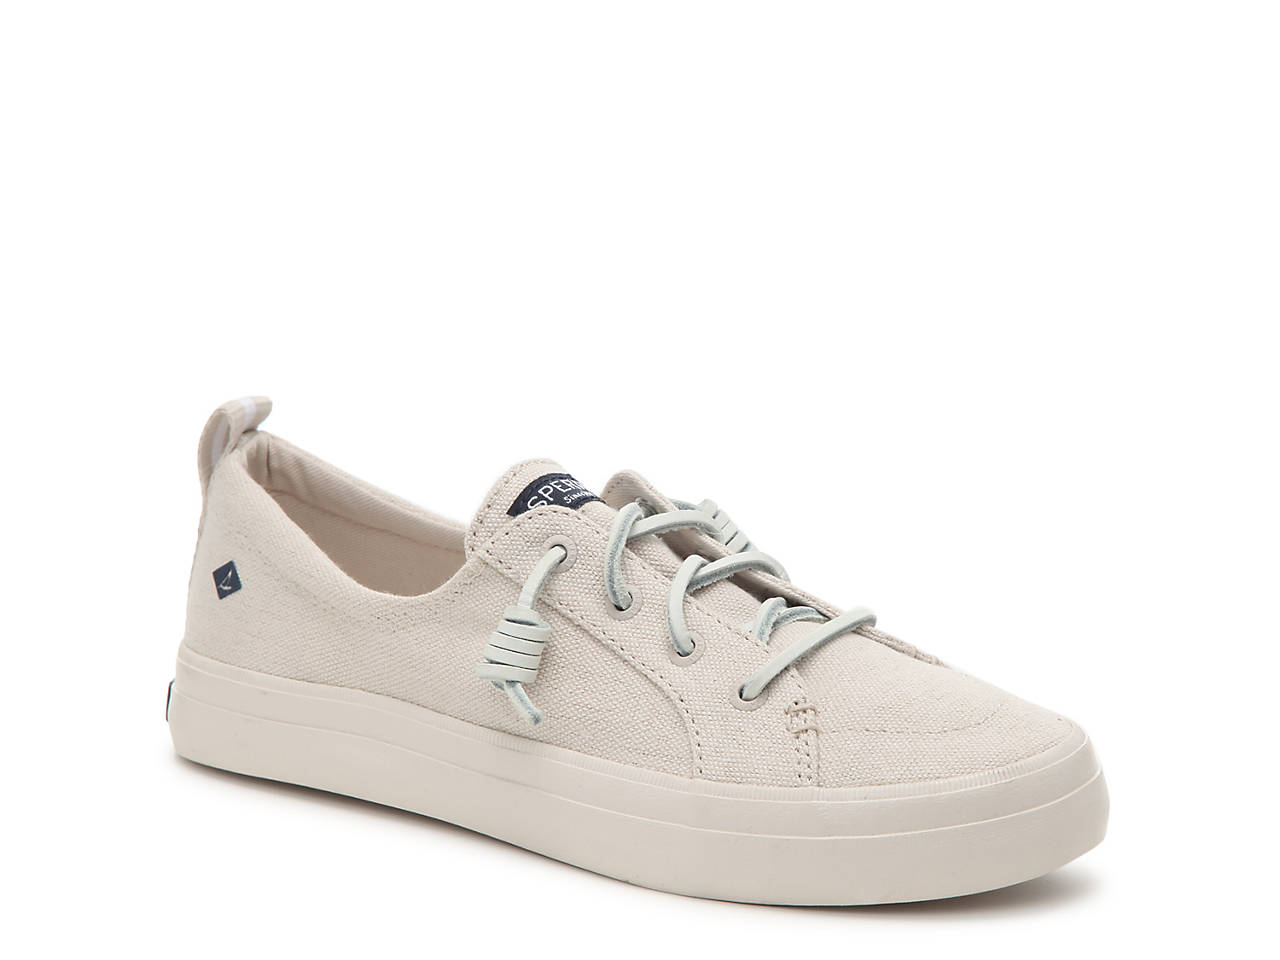 755625d62b9 Sperry Top-Sider Crest Vibe Sneaker Women s Shoes